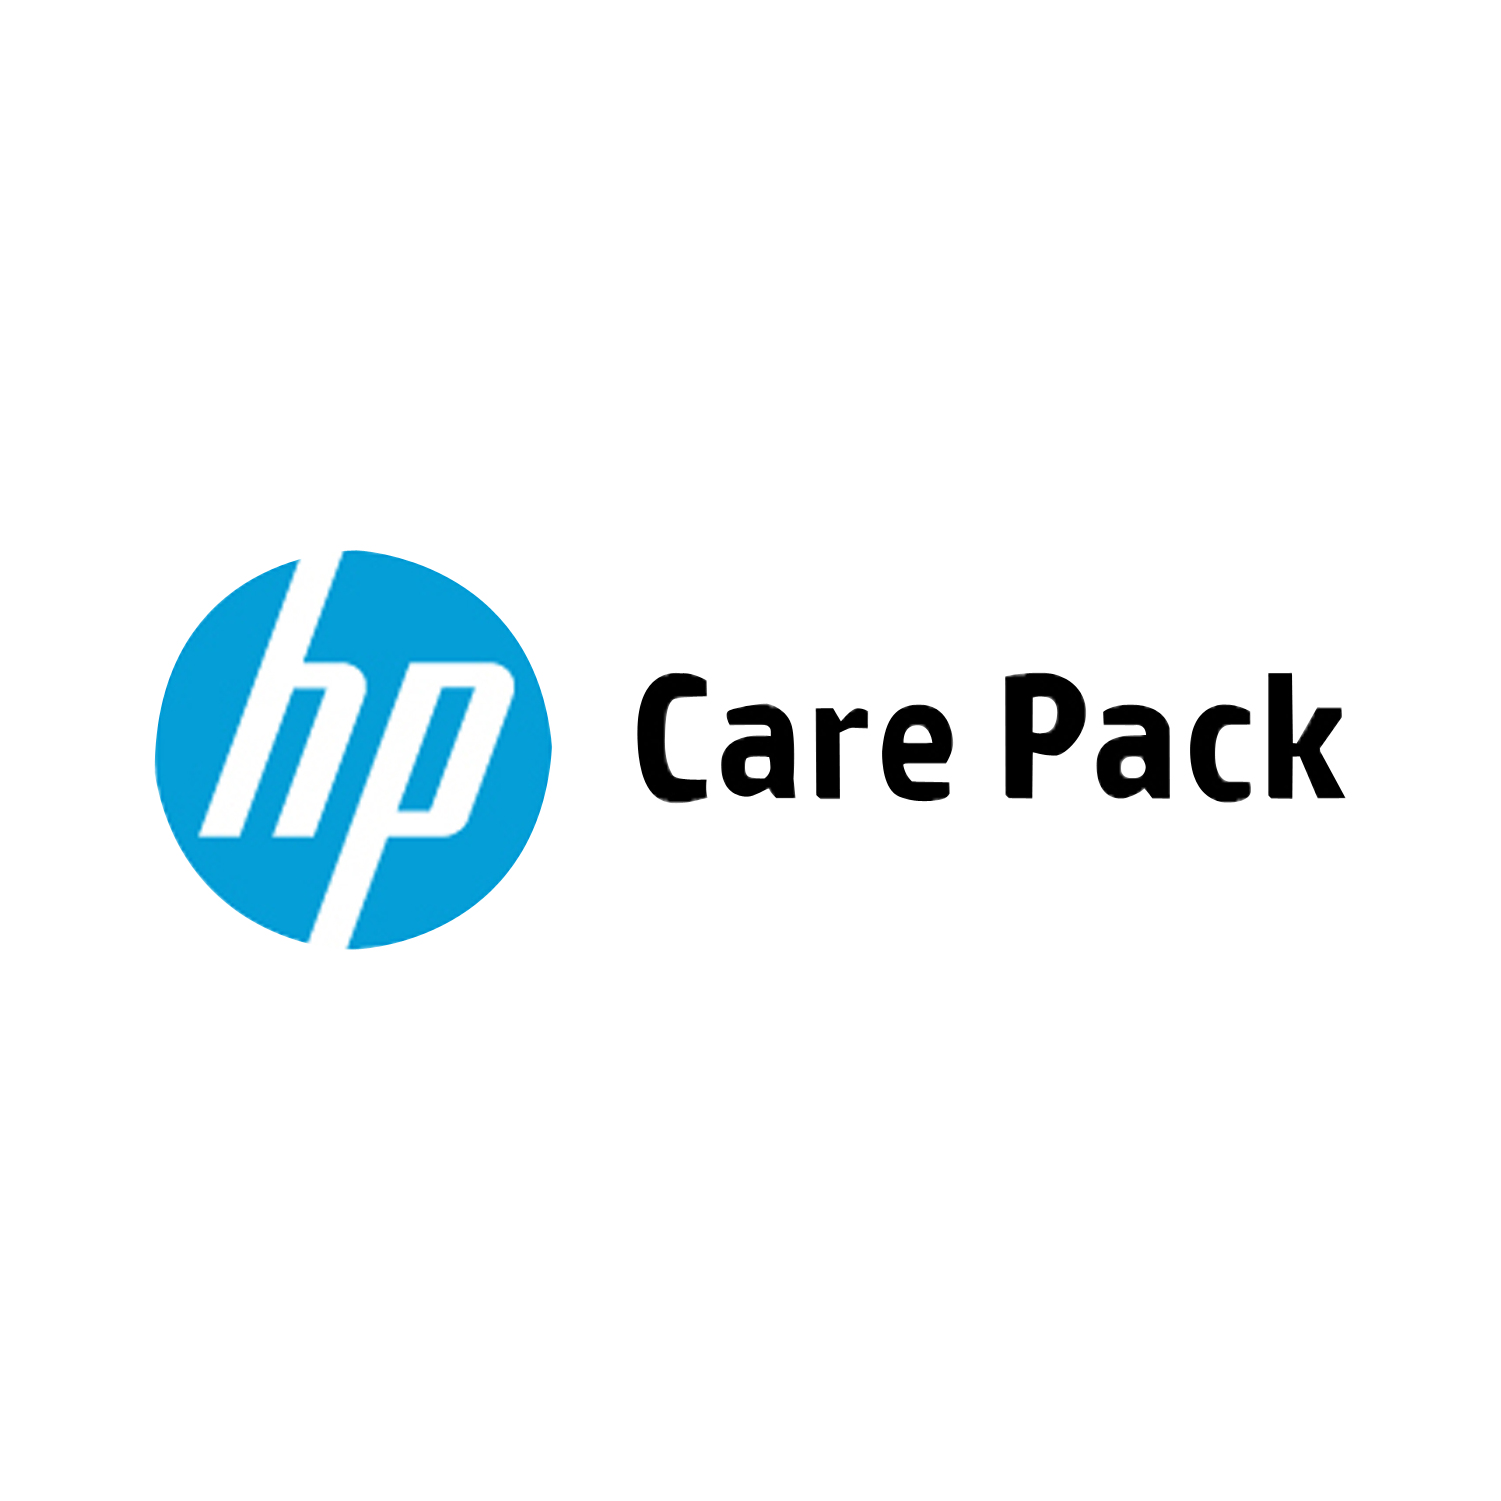 """HP 1yPW NbdandDMR Clr LsrJt CP4525 HW Supp,Color LaserJet CP4525,1 Yr Post Warranty Next Bus Day Hardware Support With Defective Media Retention. Std Bus Days/hrs, Excluding HP Holidays"" UT4 - C2000"